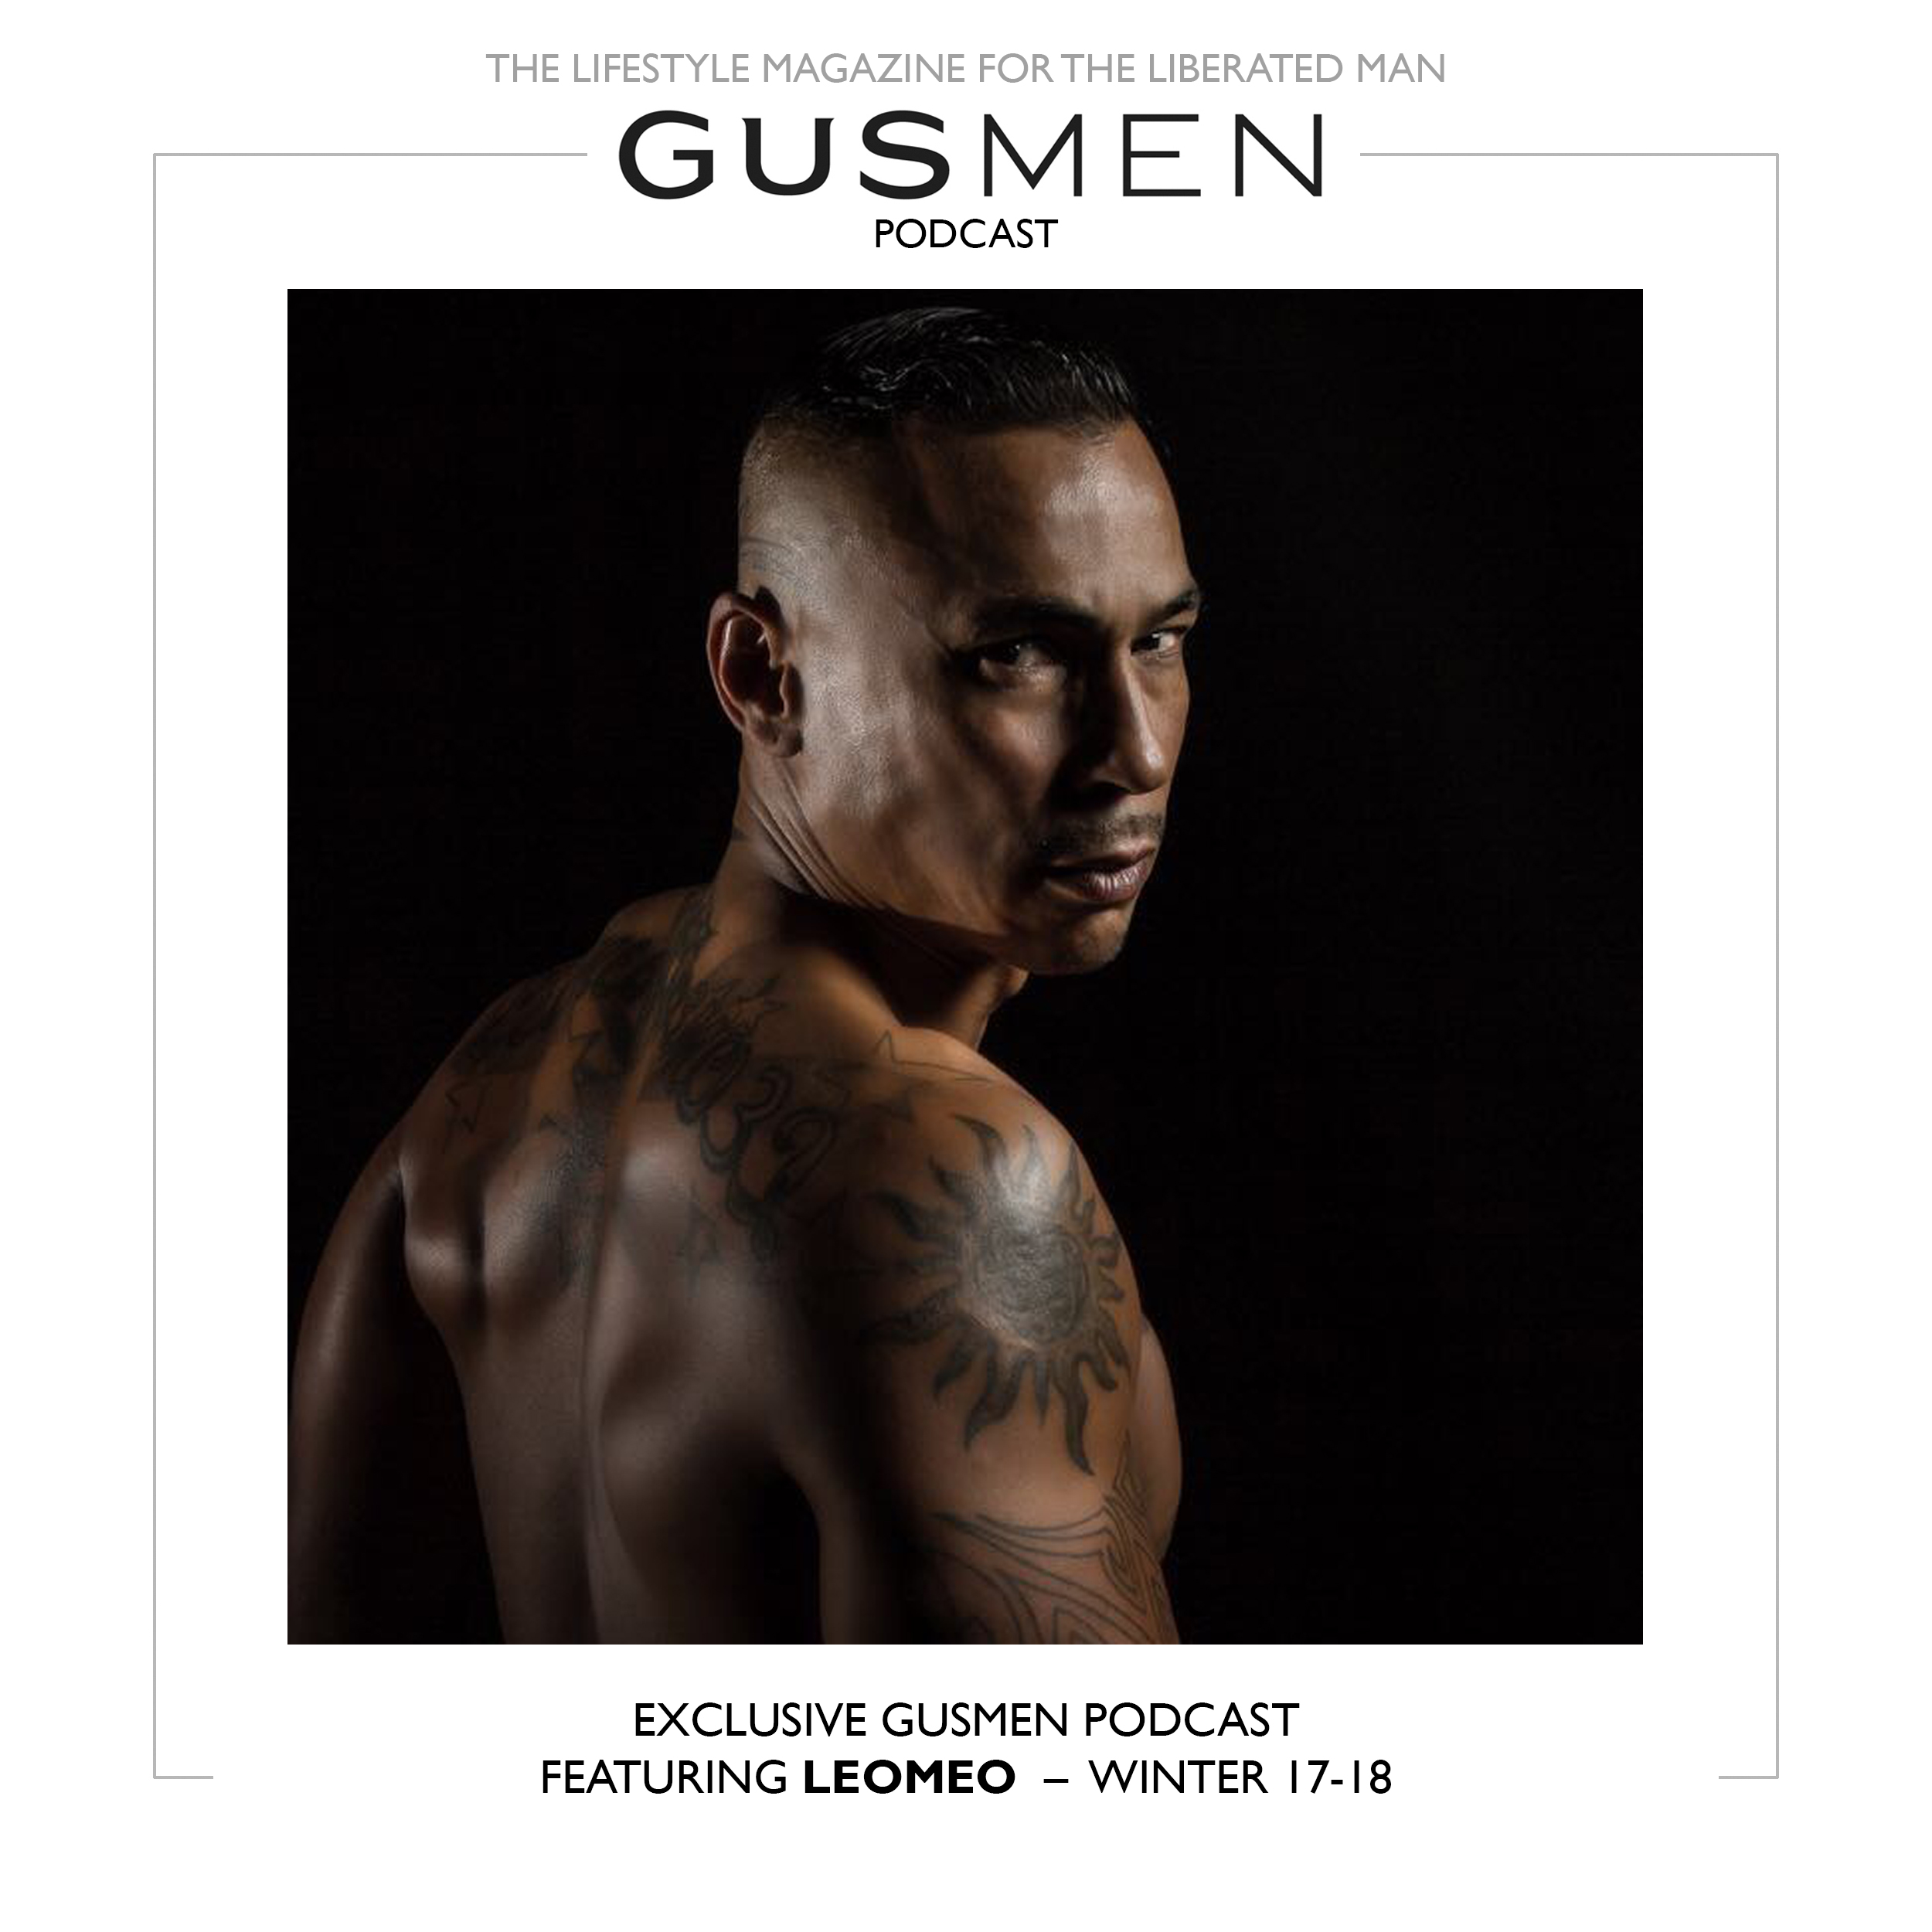 Exclusive GUSMEN Podcast Featuring LEOMEO – WINTER 2017/2018